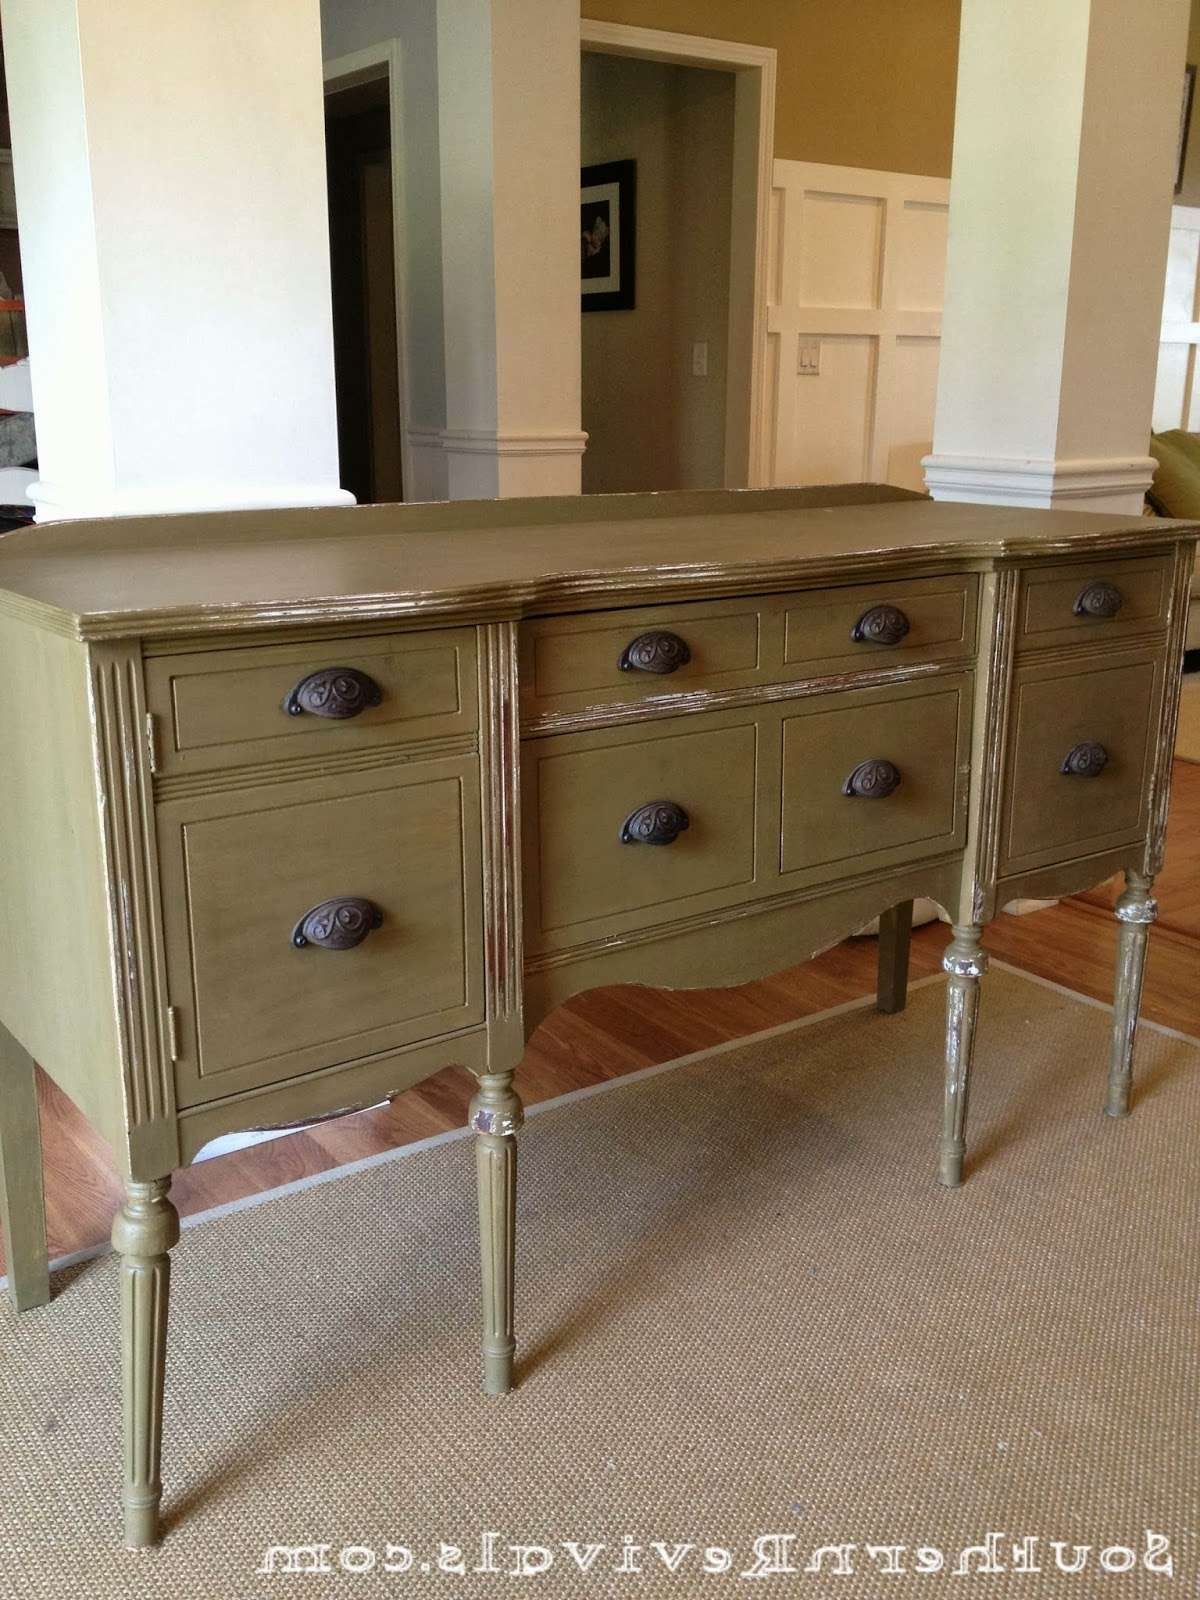 Updating A Vintage Sideboard Buffet With A Pop Of Color – Southern Regarding Vintage Sideboards (View 14 of 20)